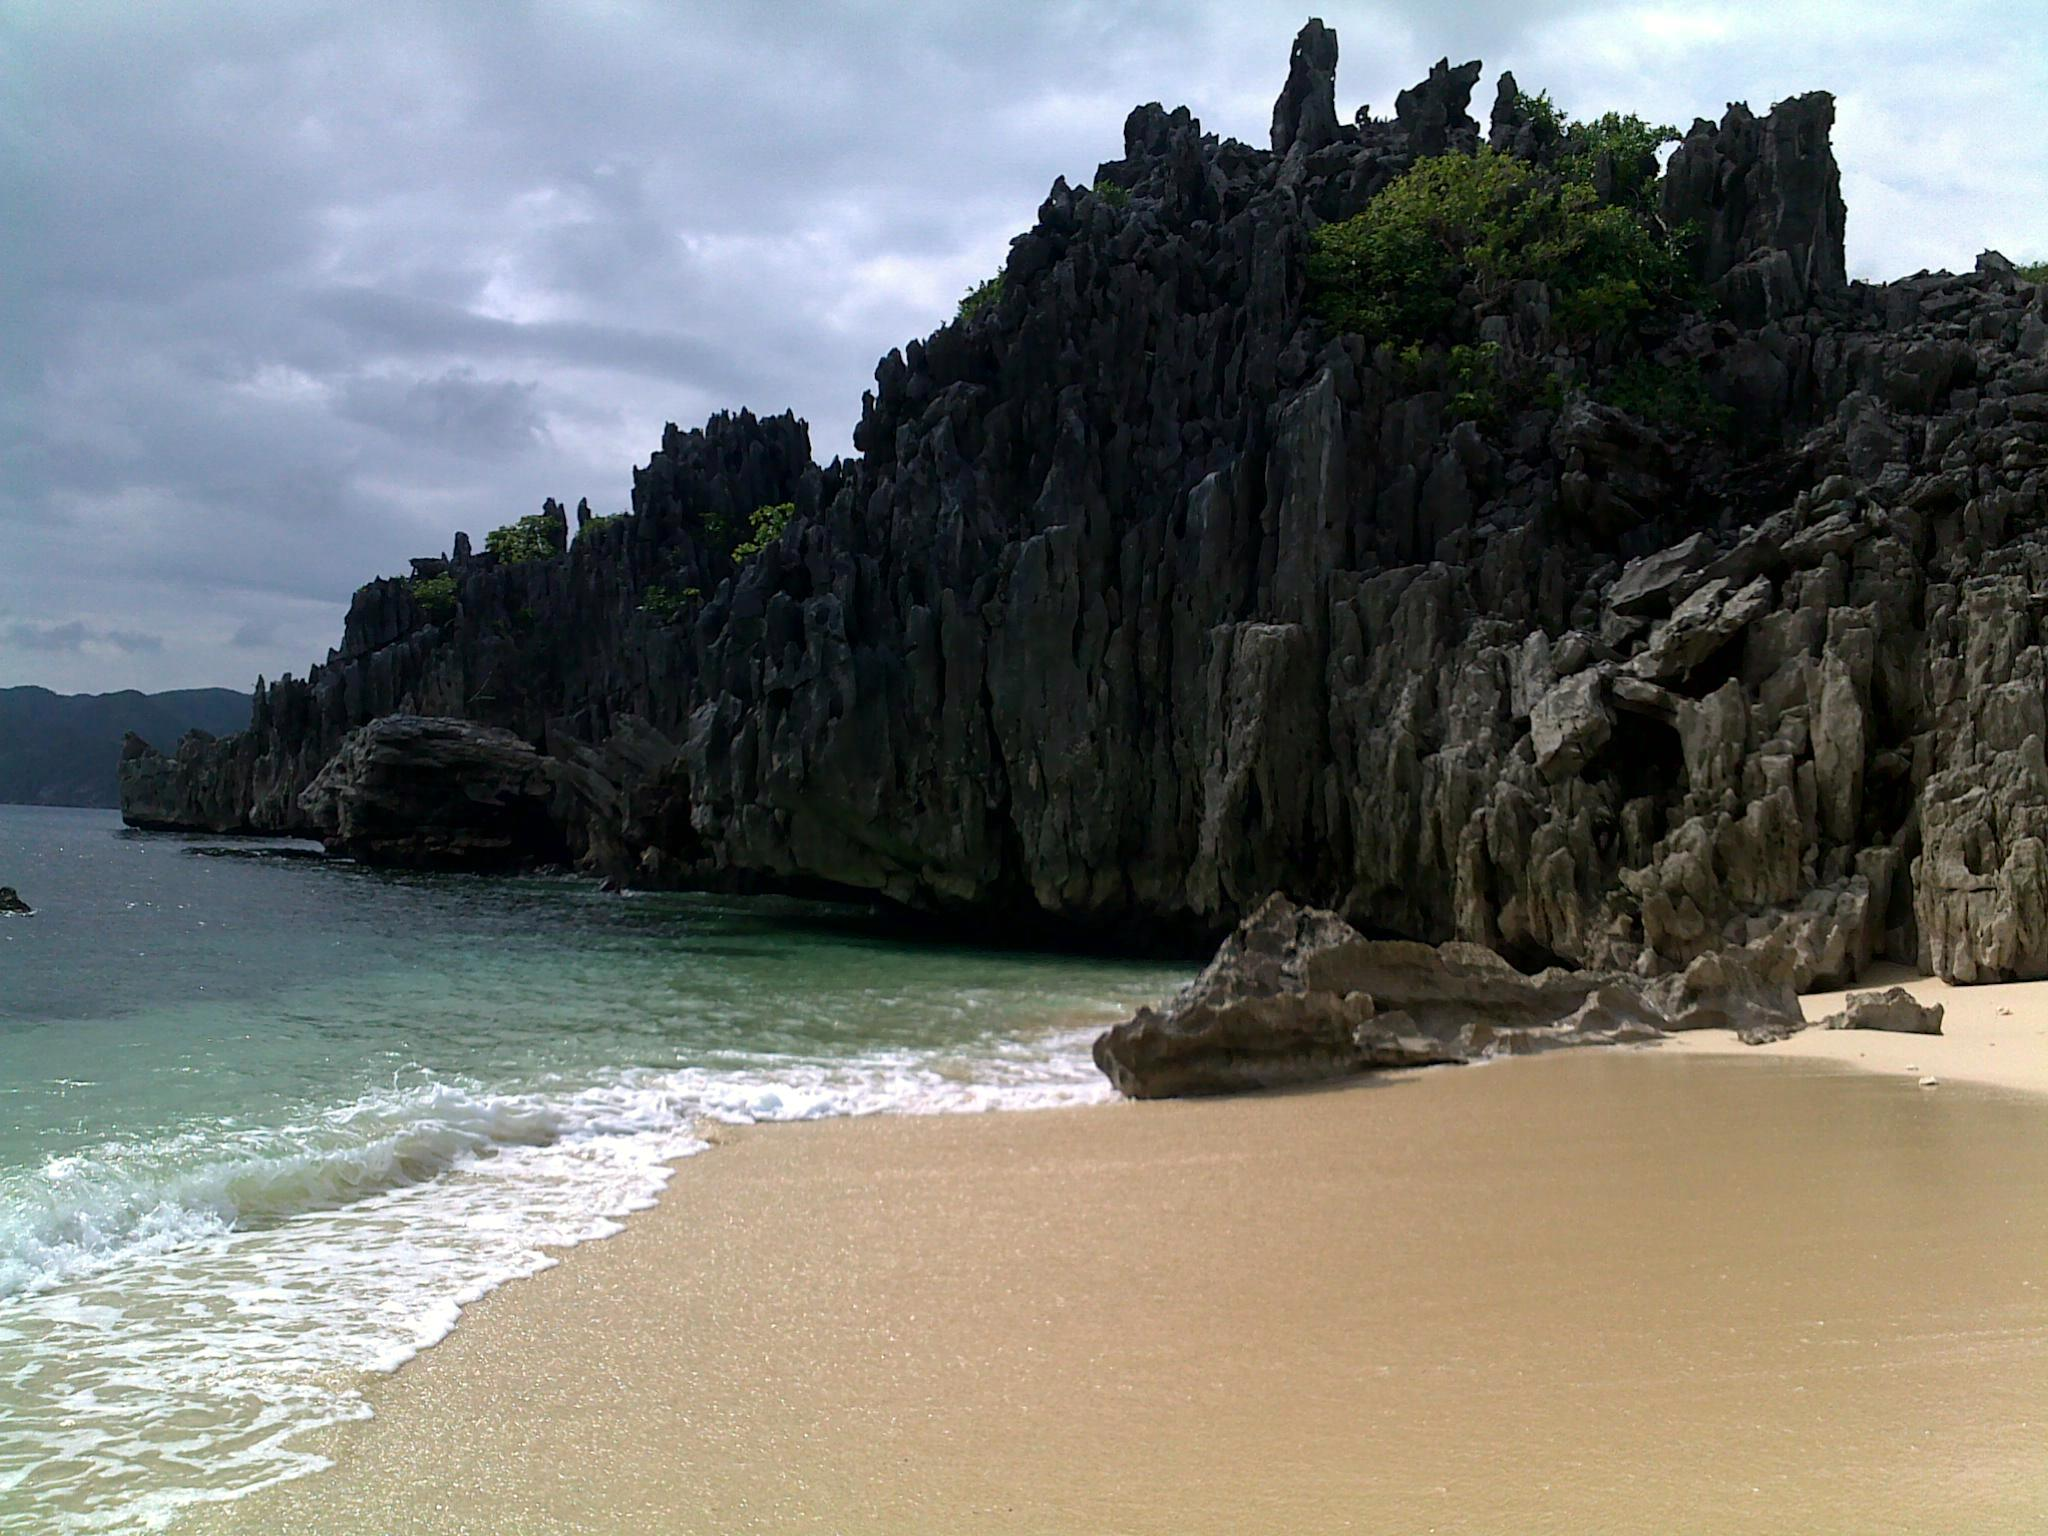 Caramoan Philippines  City new picture : Survivor Season 25 location, Caramoan Philippines | WITHOUT WANG²